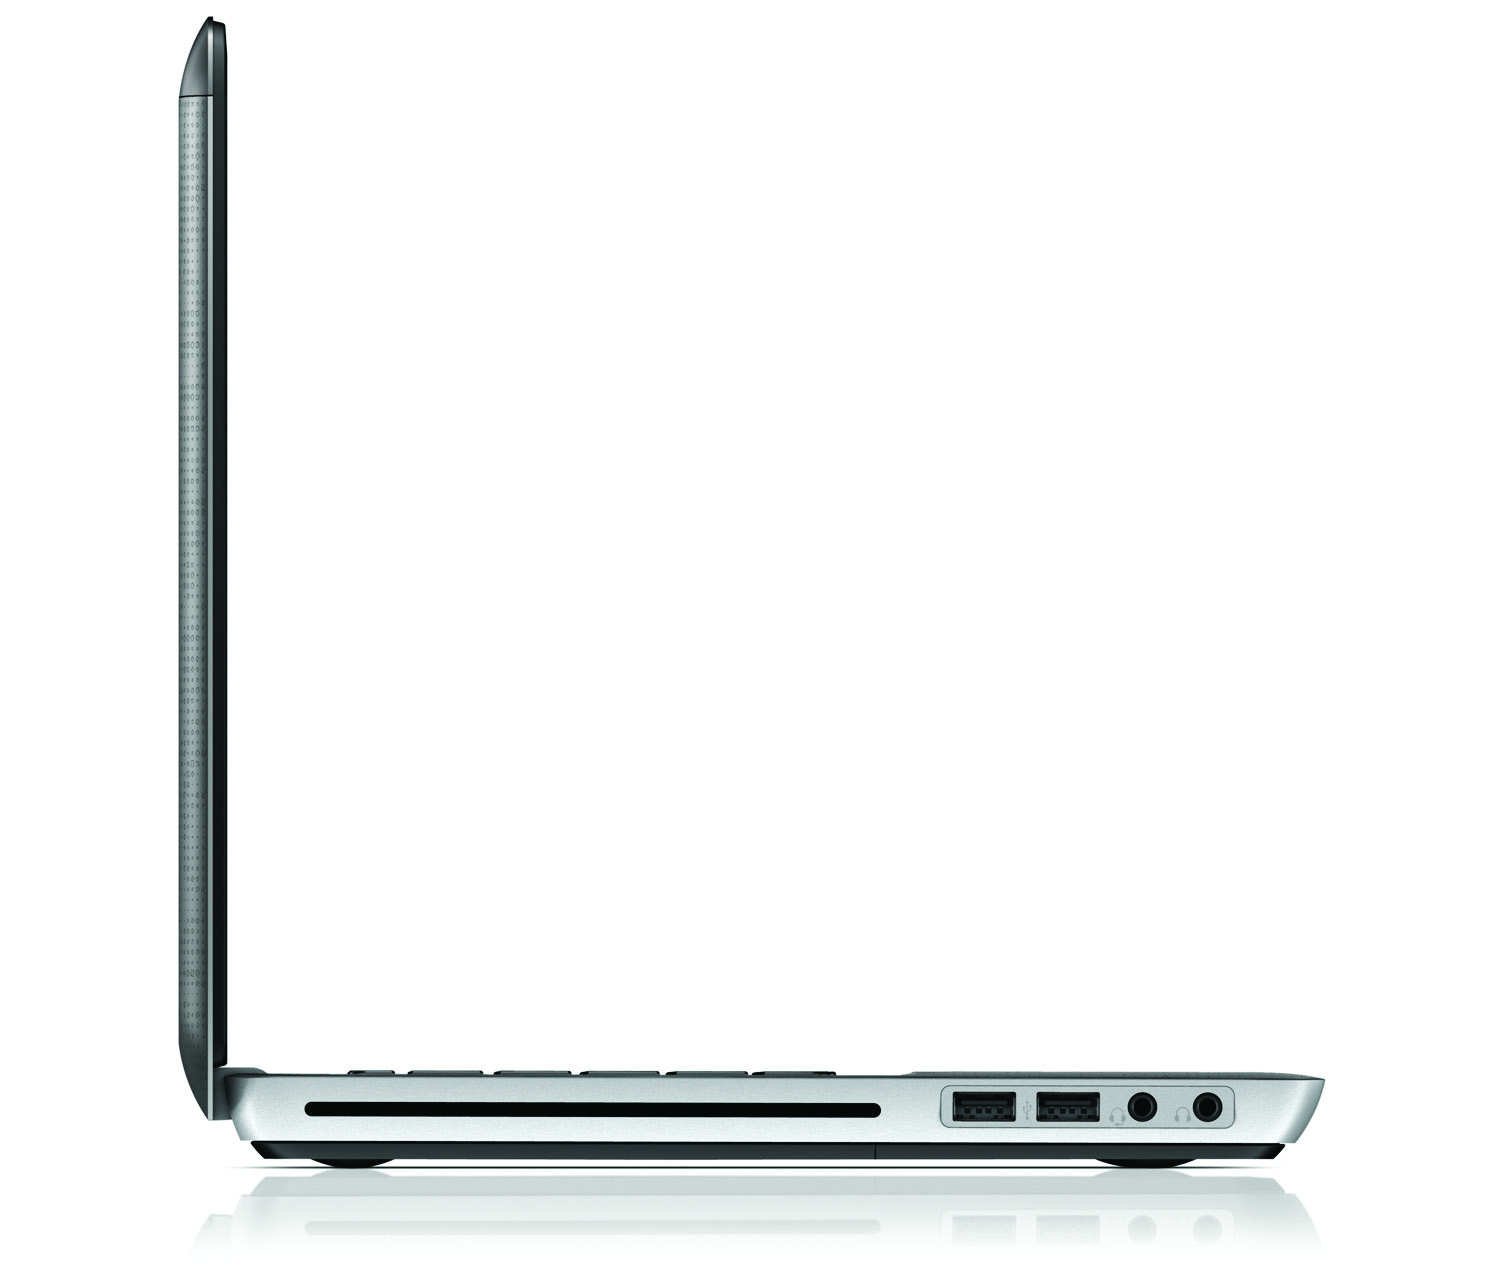 HP Envy 14, right profile on white